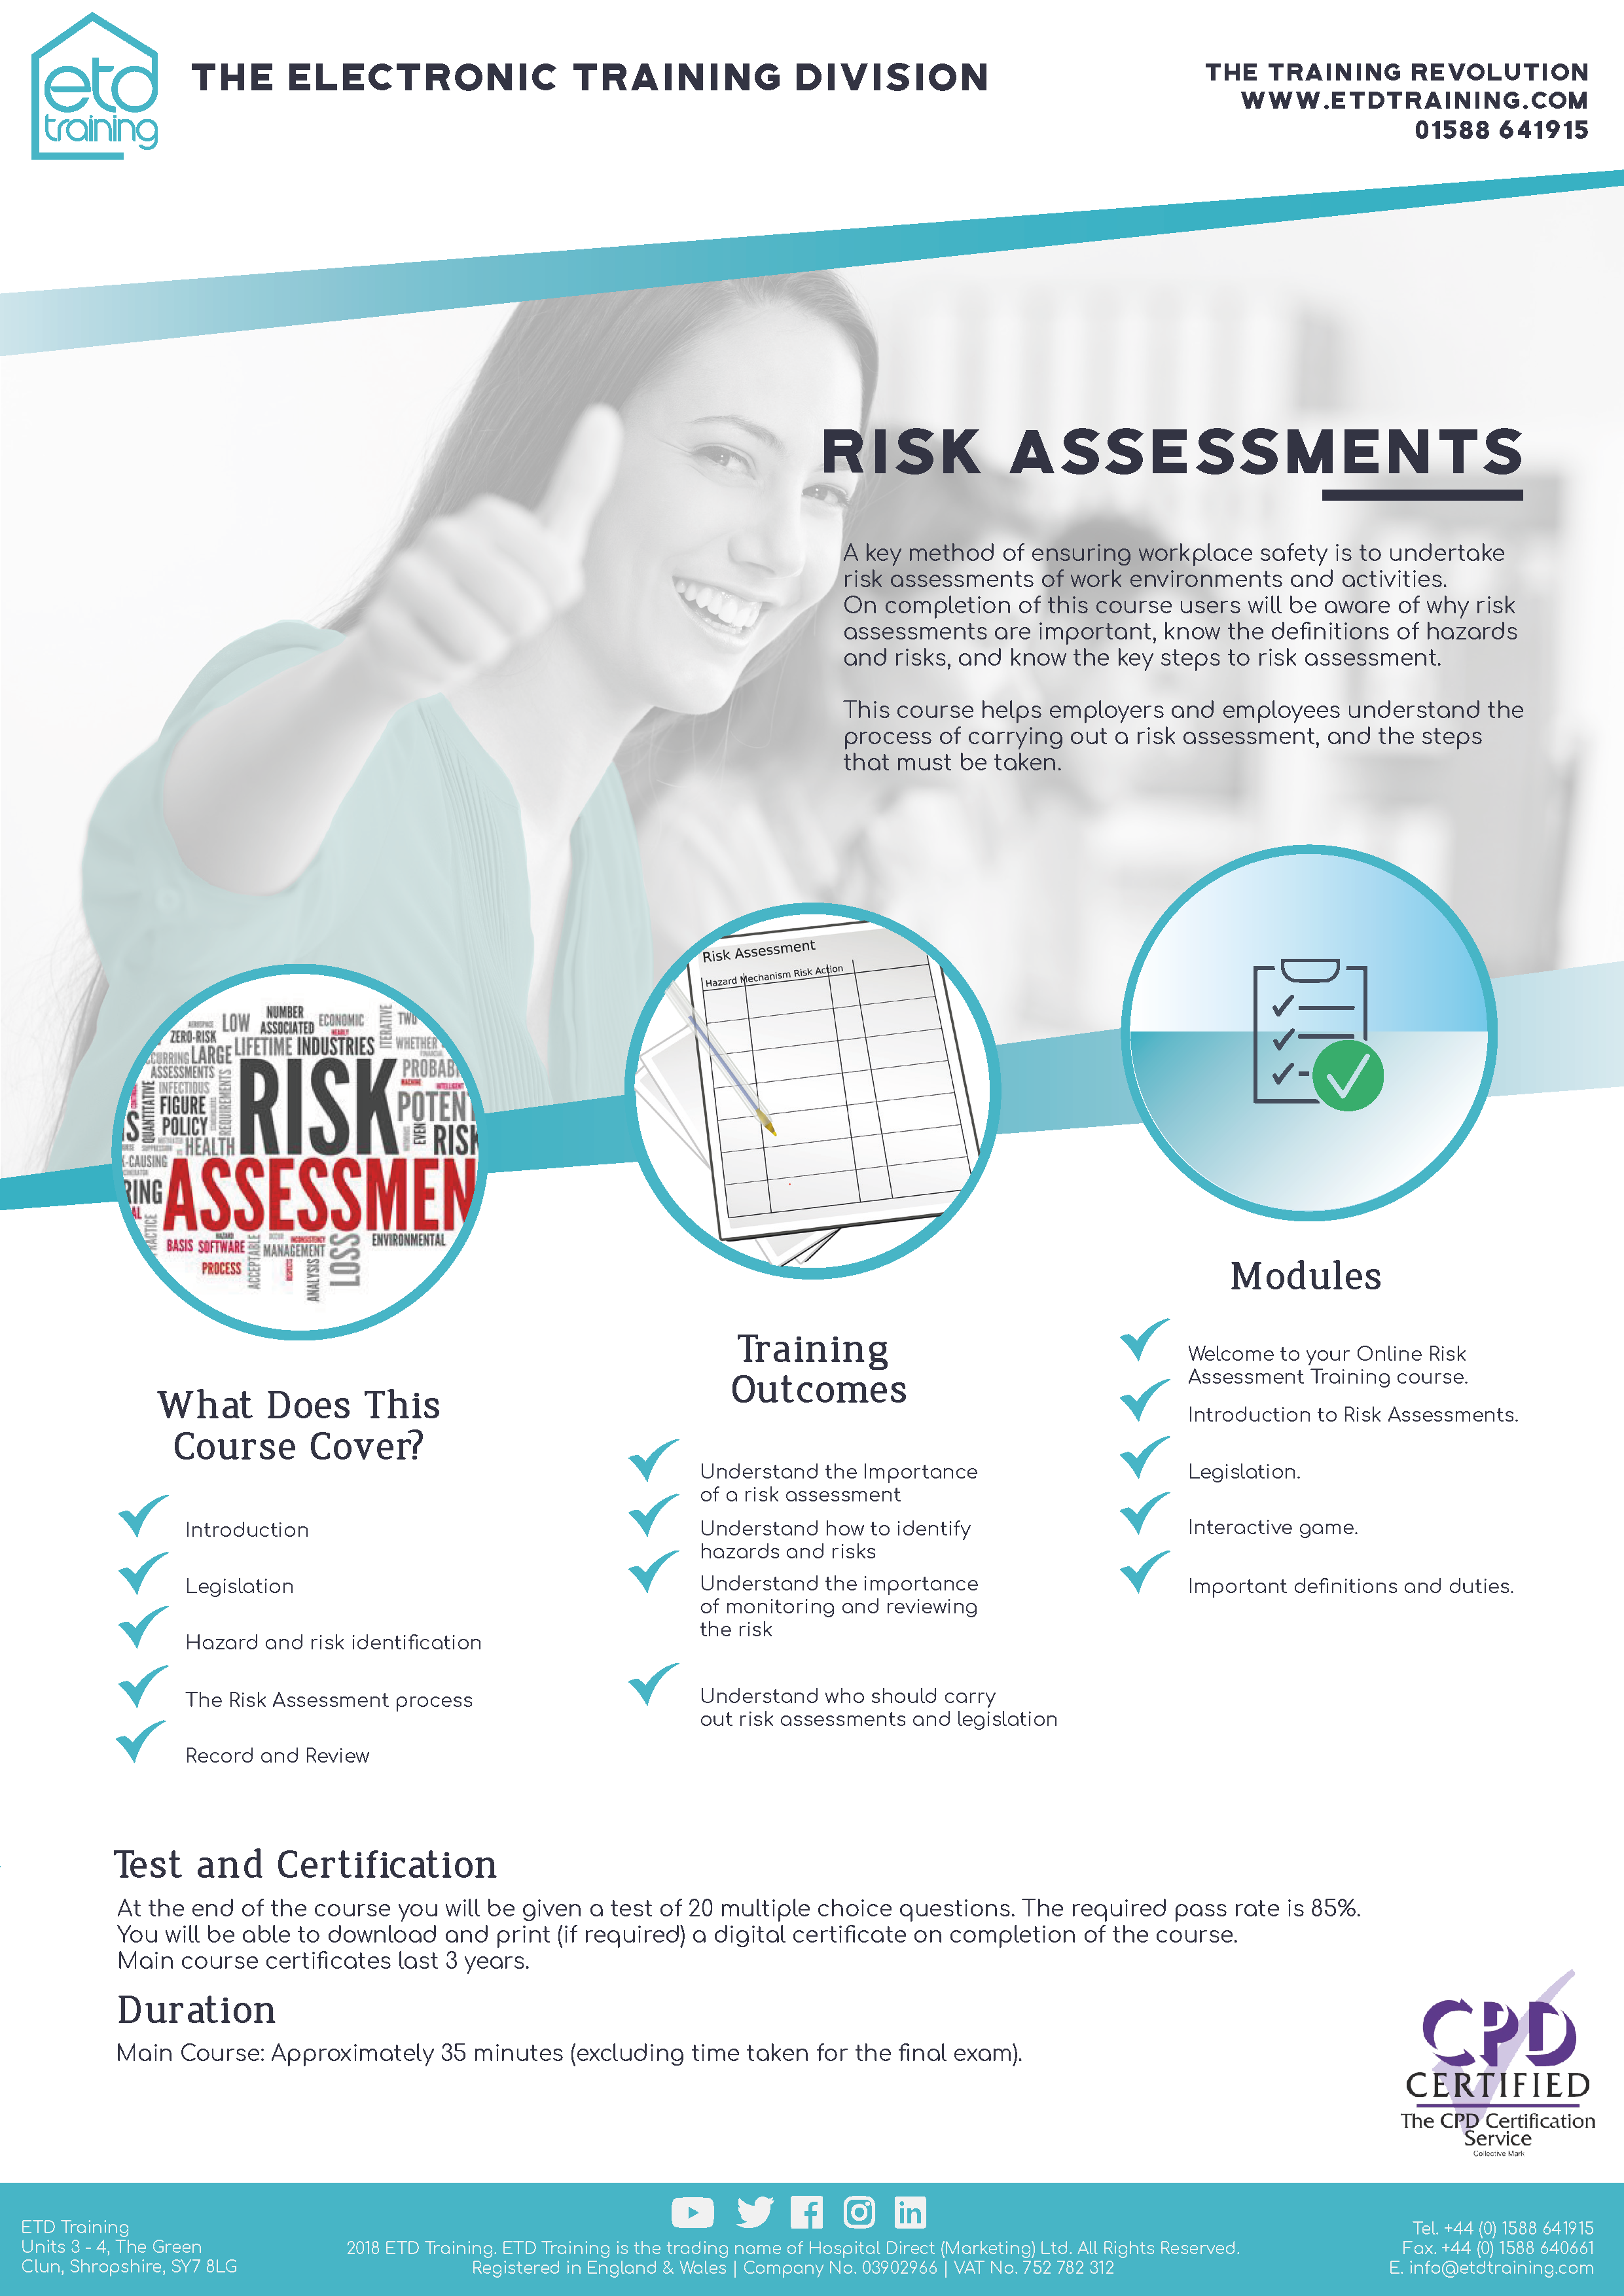 RiskAssessments-2PrTIp.png